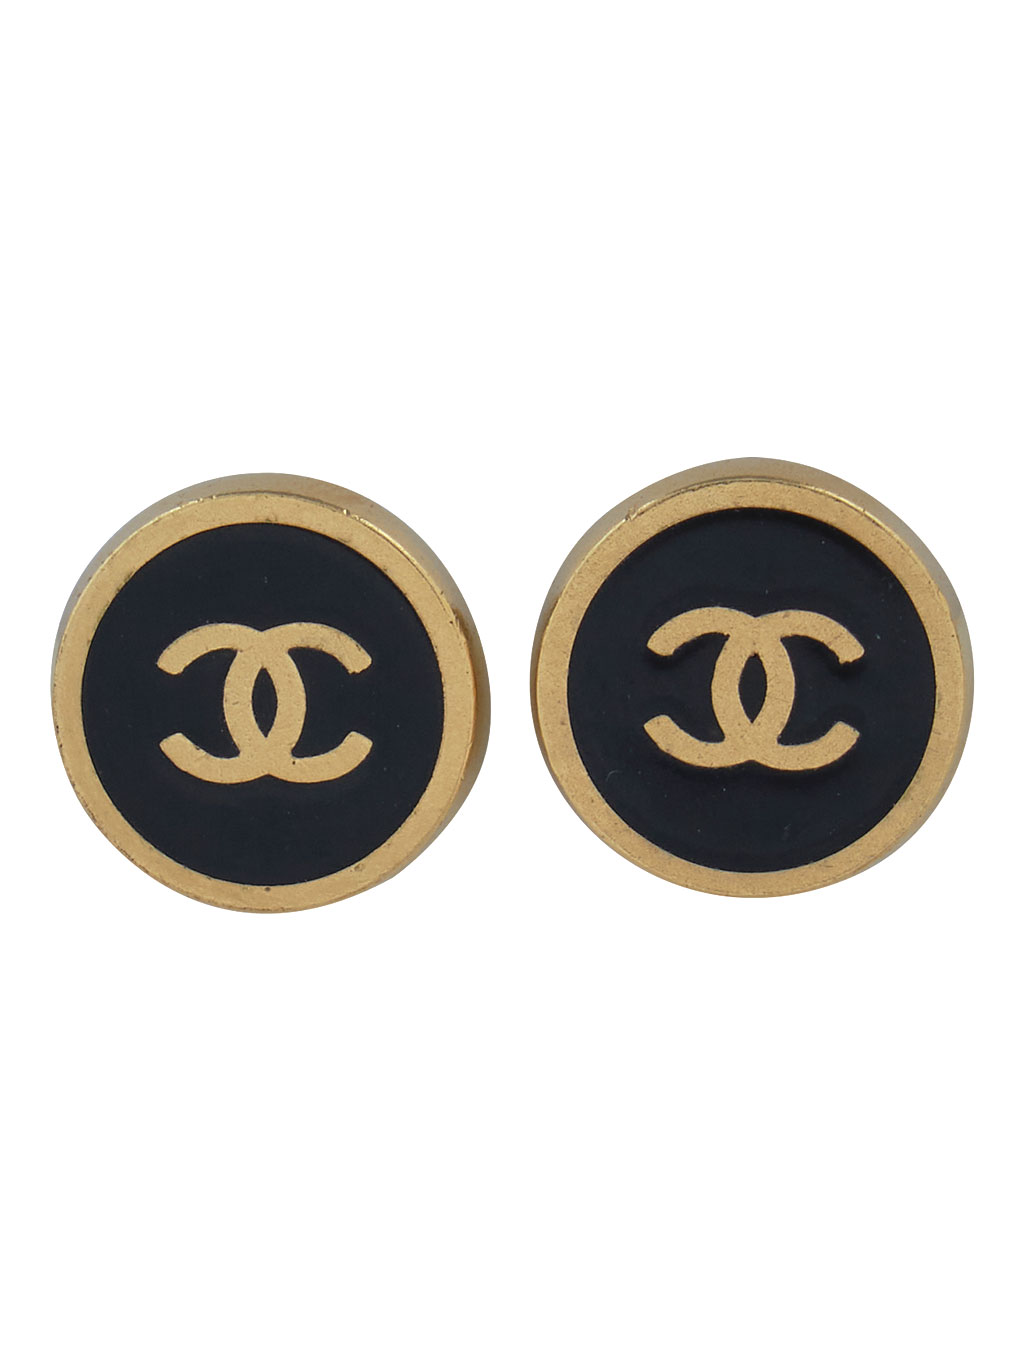 CHANEL LOGO EARRINGS